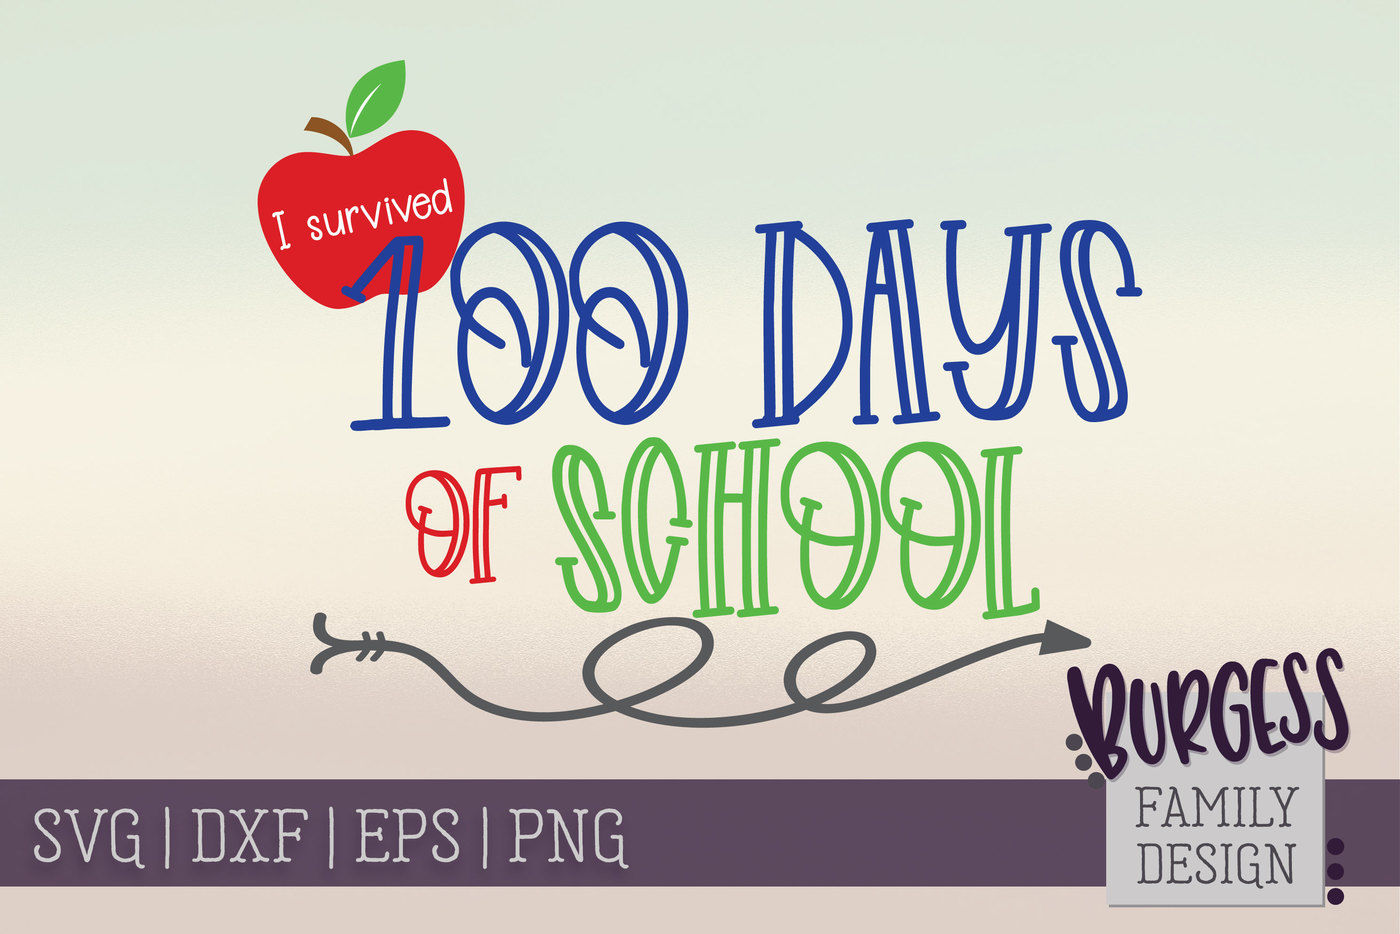 I Survived 100 Days Of School Cut File By Burgess Family Design Thehungryjpeg Com